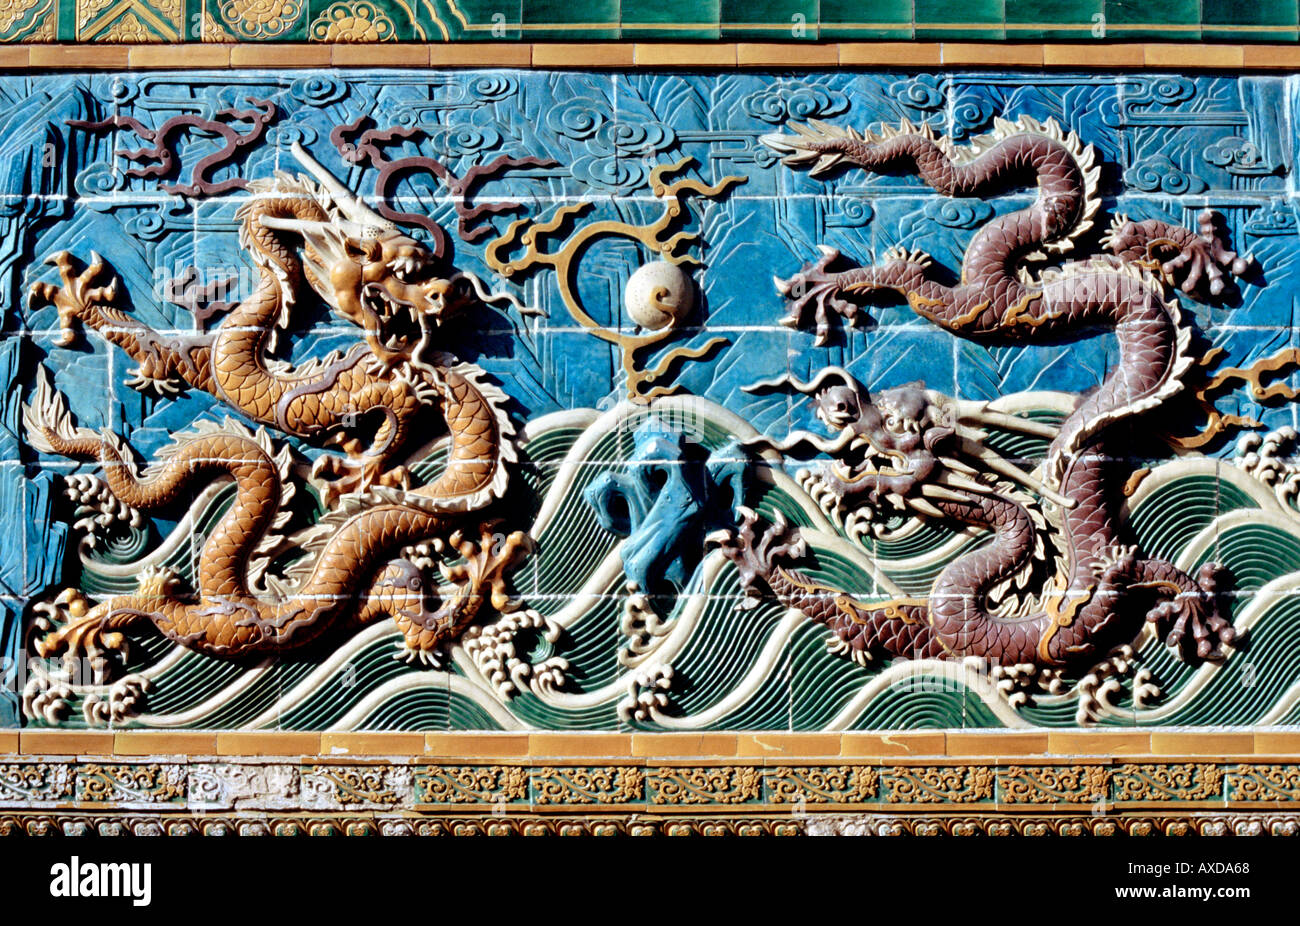 Detail Of Nine Dragon Screen Wall In Beijing The Capital Of China - Stock Image